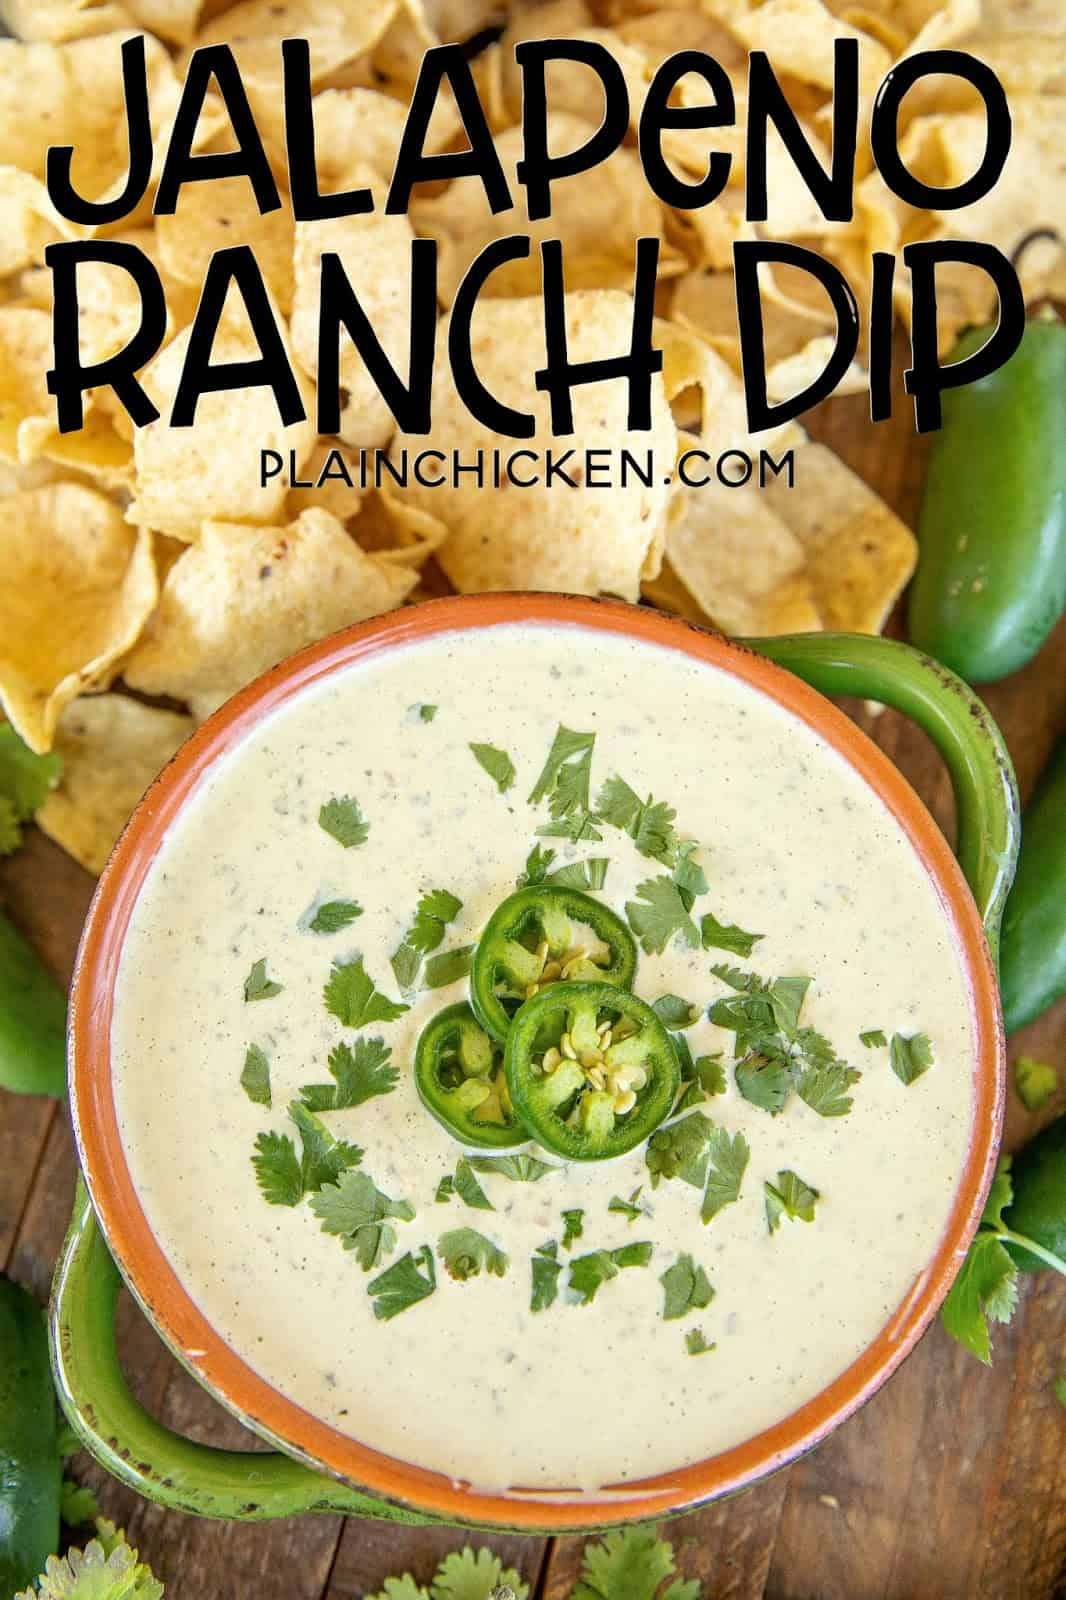 jalapeno ranch dip on a table with chips